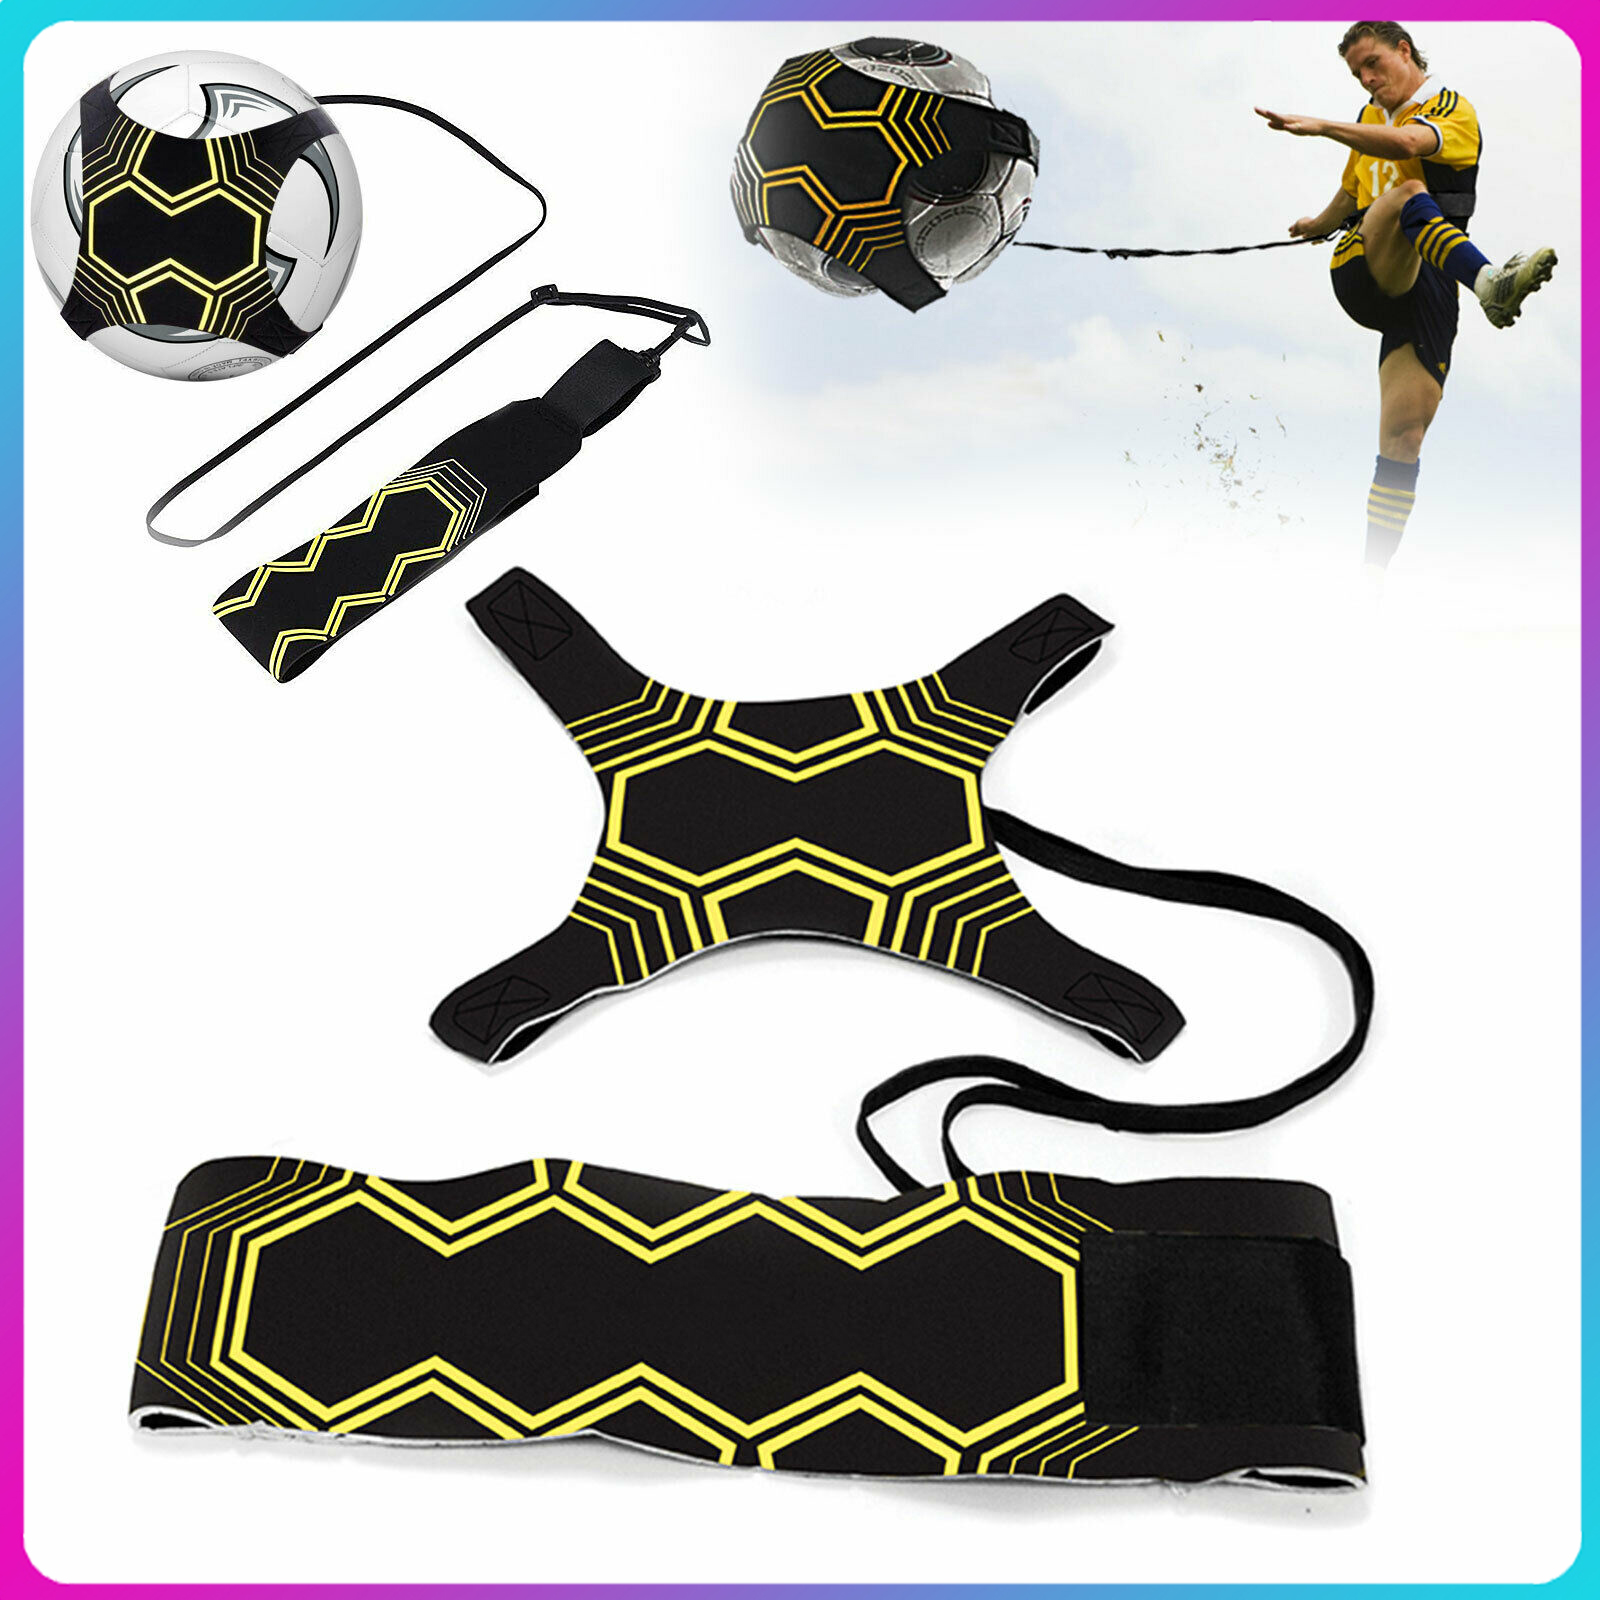 (VIP) Soccer Trainer Football Kick Throw Solo Practice Training Aid Control Skills Adjustable Equipment Ball Bags Gift